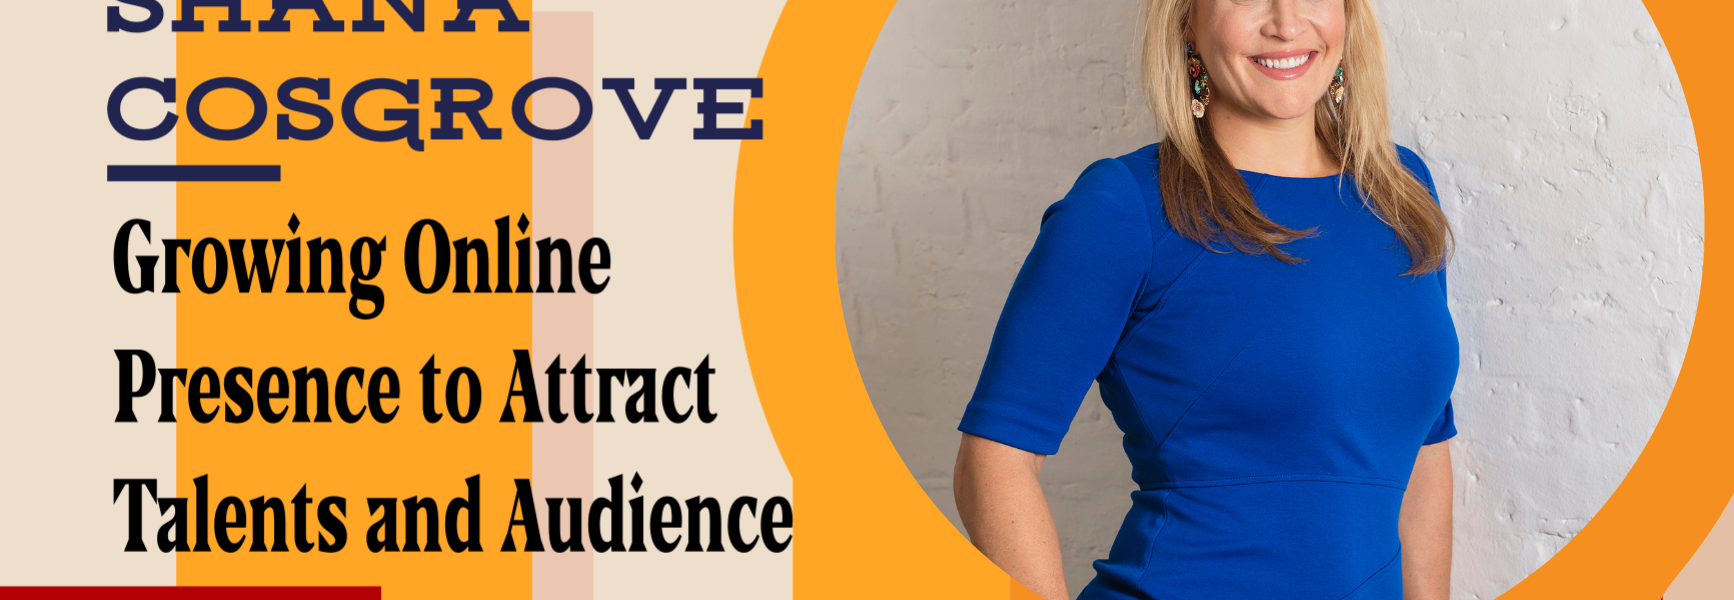 Growing Online Presence to Attract Talents and Audience with Shana Cosgrove